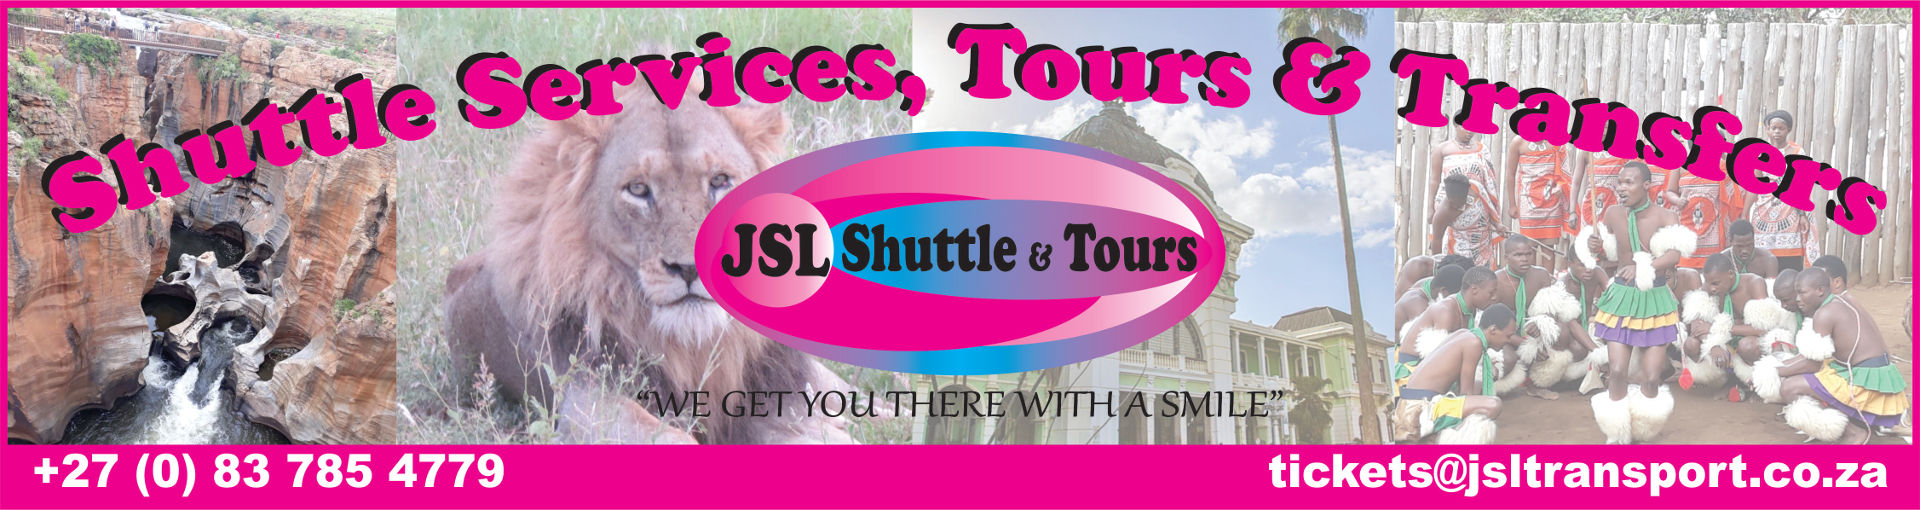 Logo of JSL shuttle services, transfer and tours